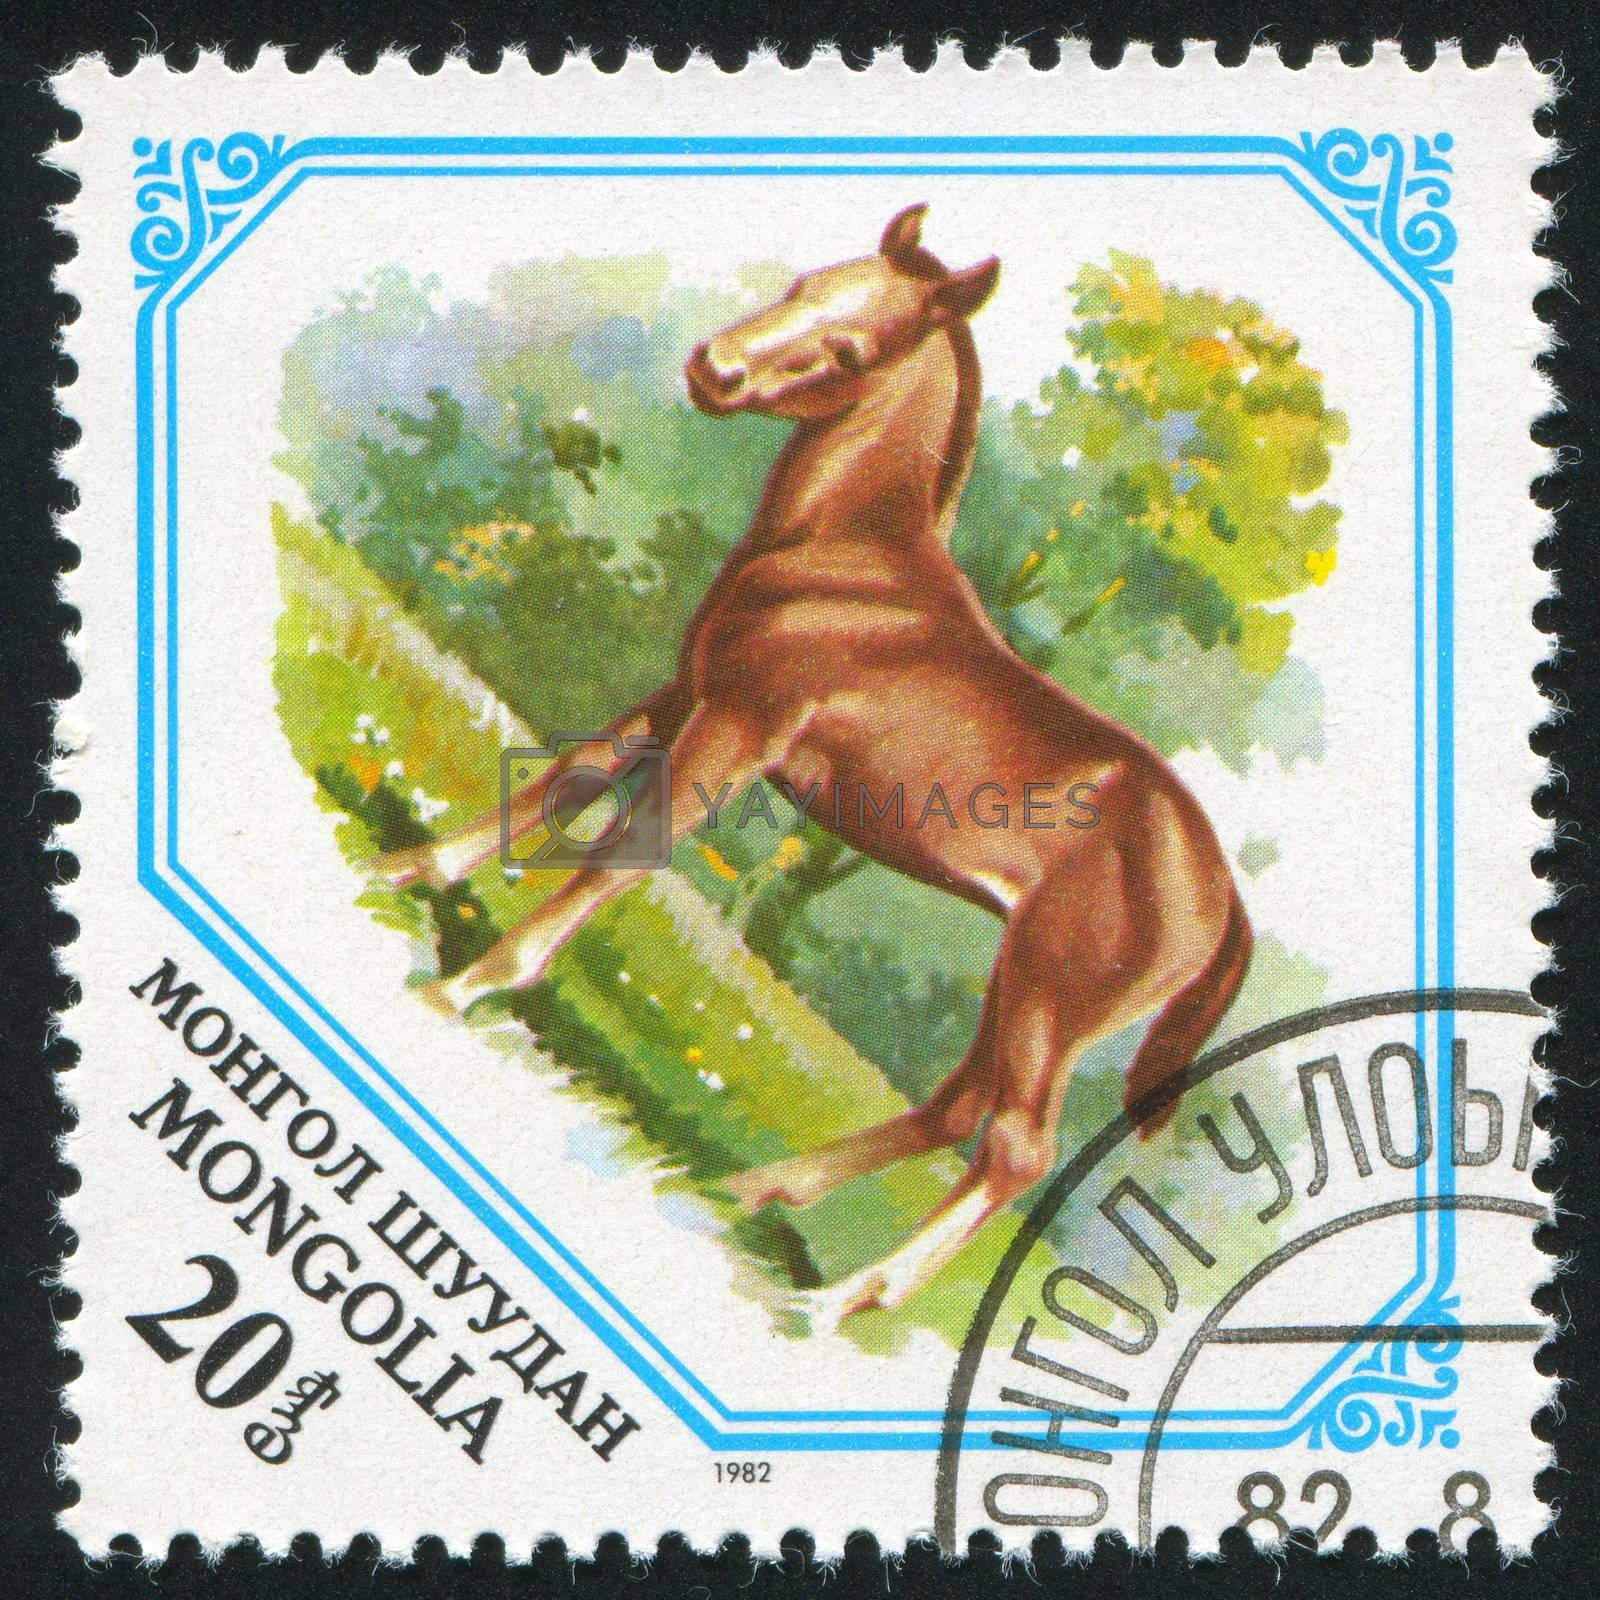 MONGOLIA - CIRCA 1982: stamp printed by Mongolia, shows Colt, circa 1982.